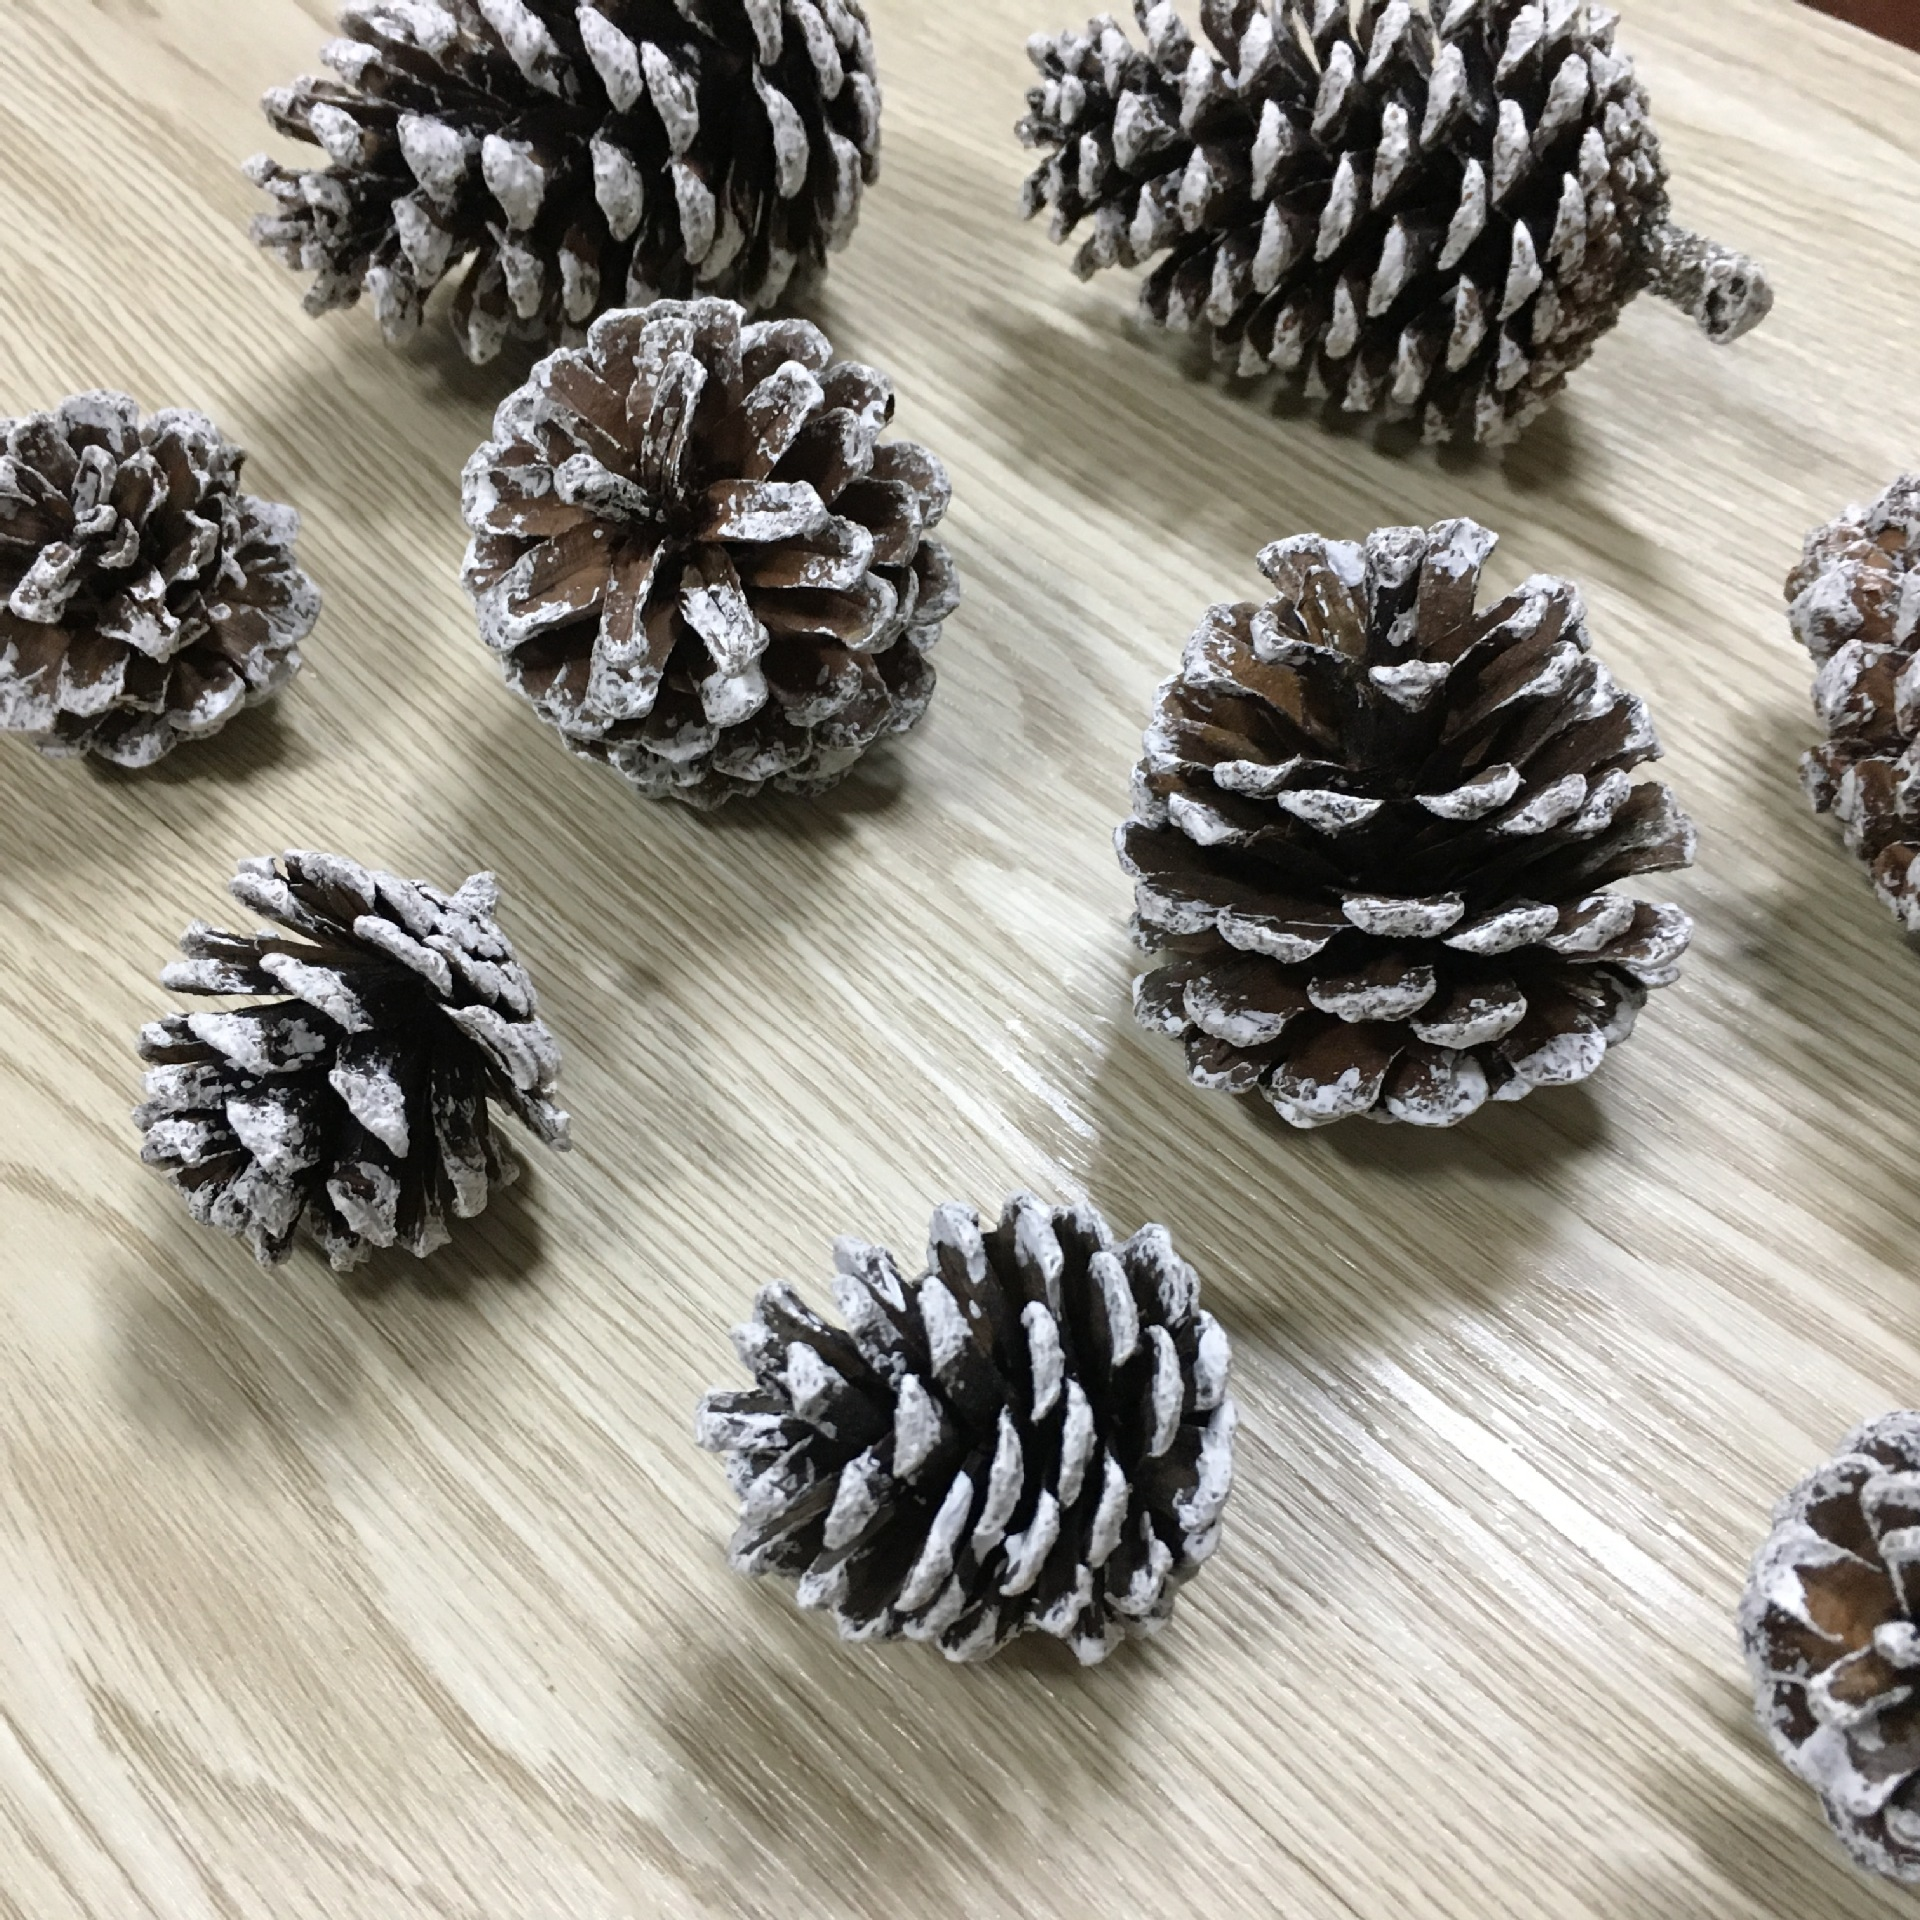 36pcs 4cm Christmas Pine Cones Pendant With String Natural Wood Christmas Tree Decoration Crafts Home Ornament Make better